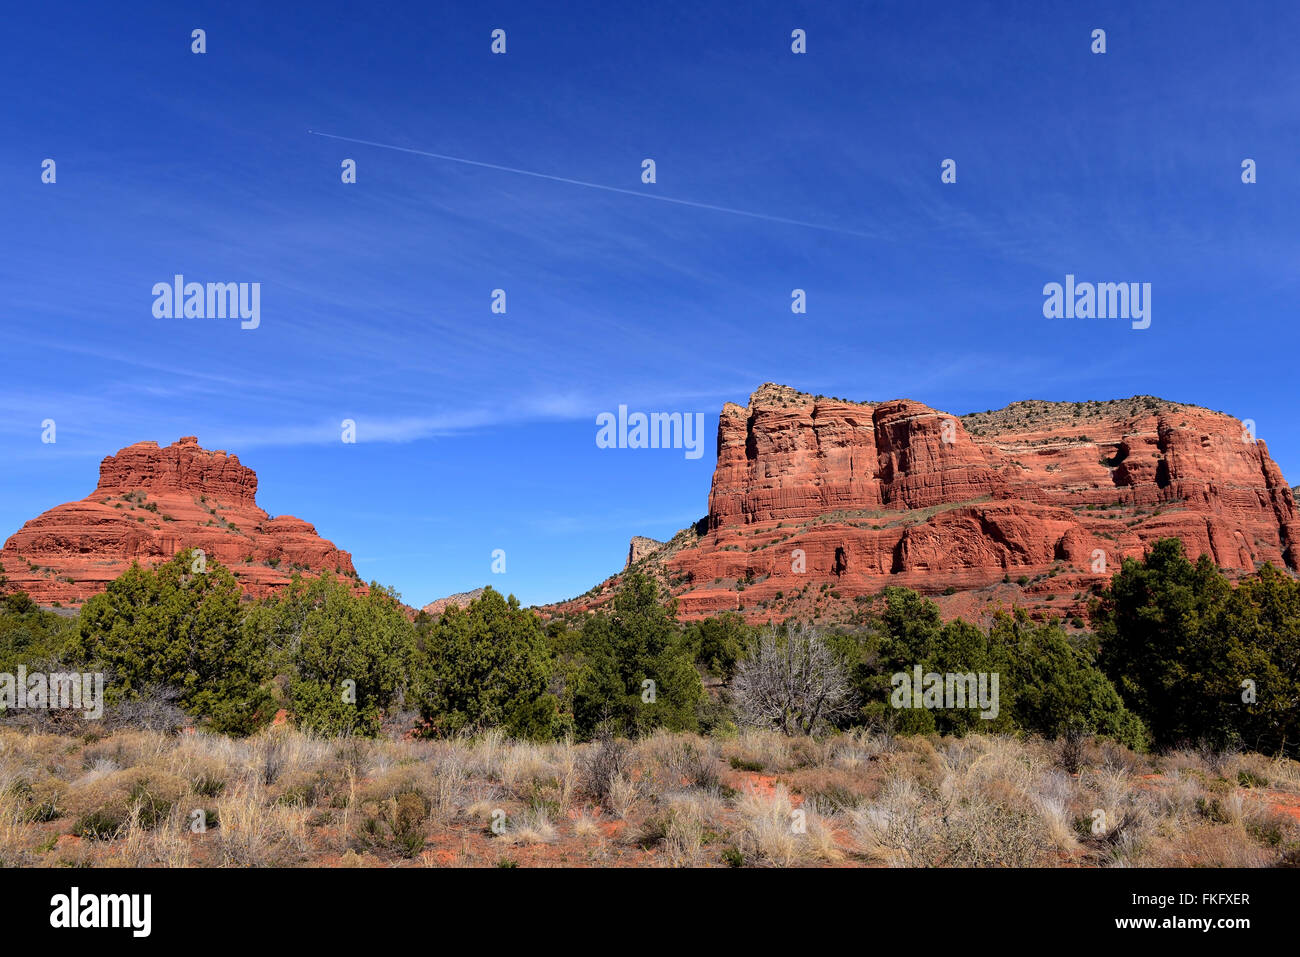 The red rock formations of Sedona Arizona, featuring Bell Rock on the left and jet with vapor trail in the sky. - Stock Image